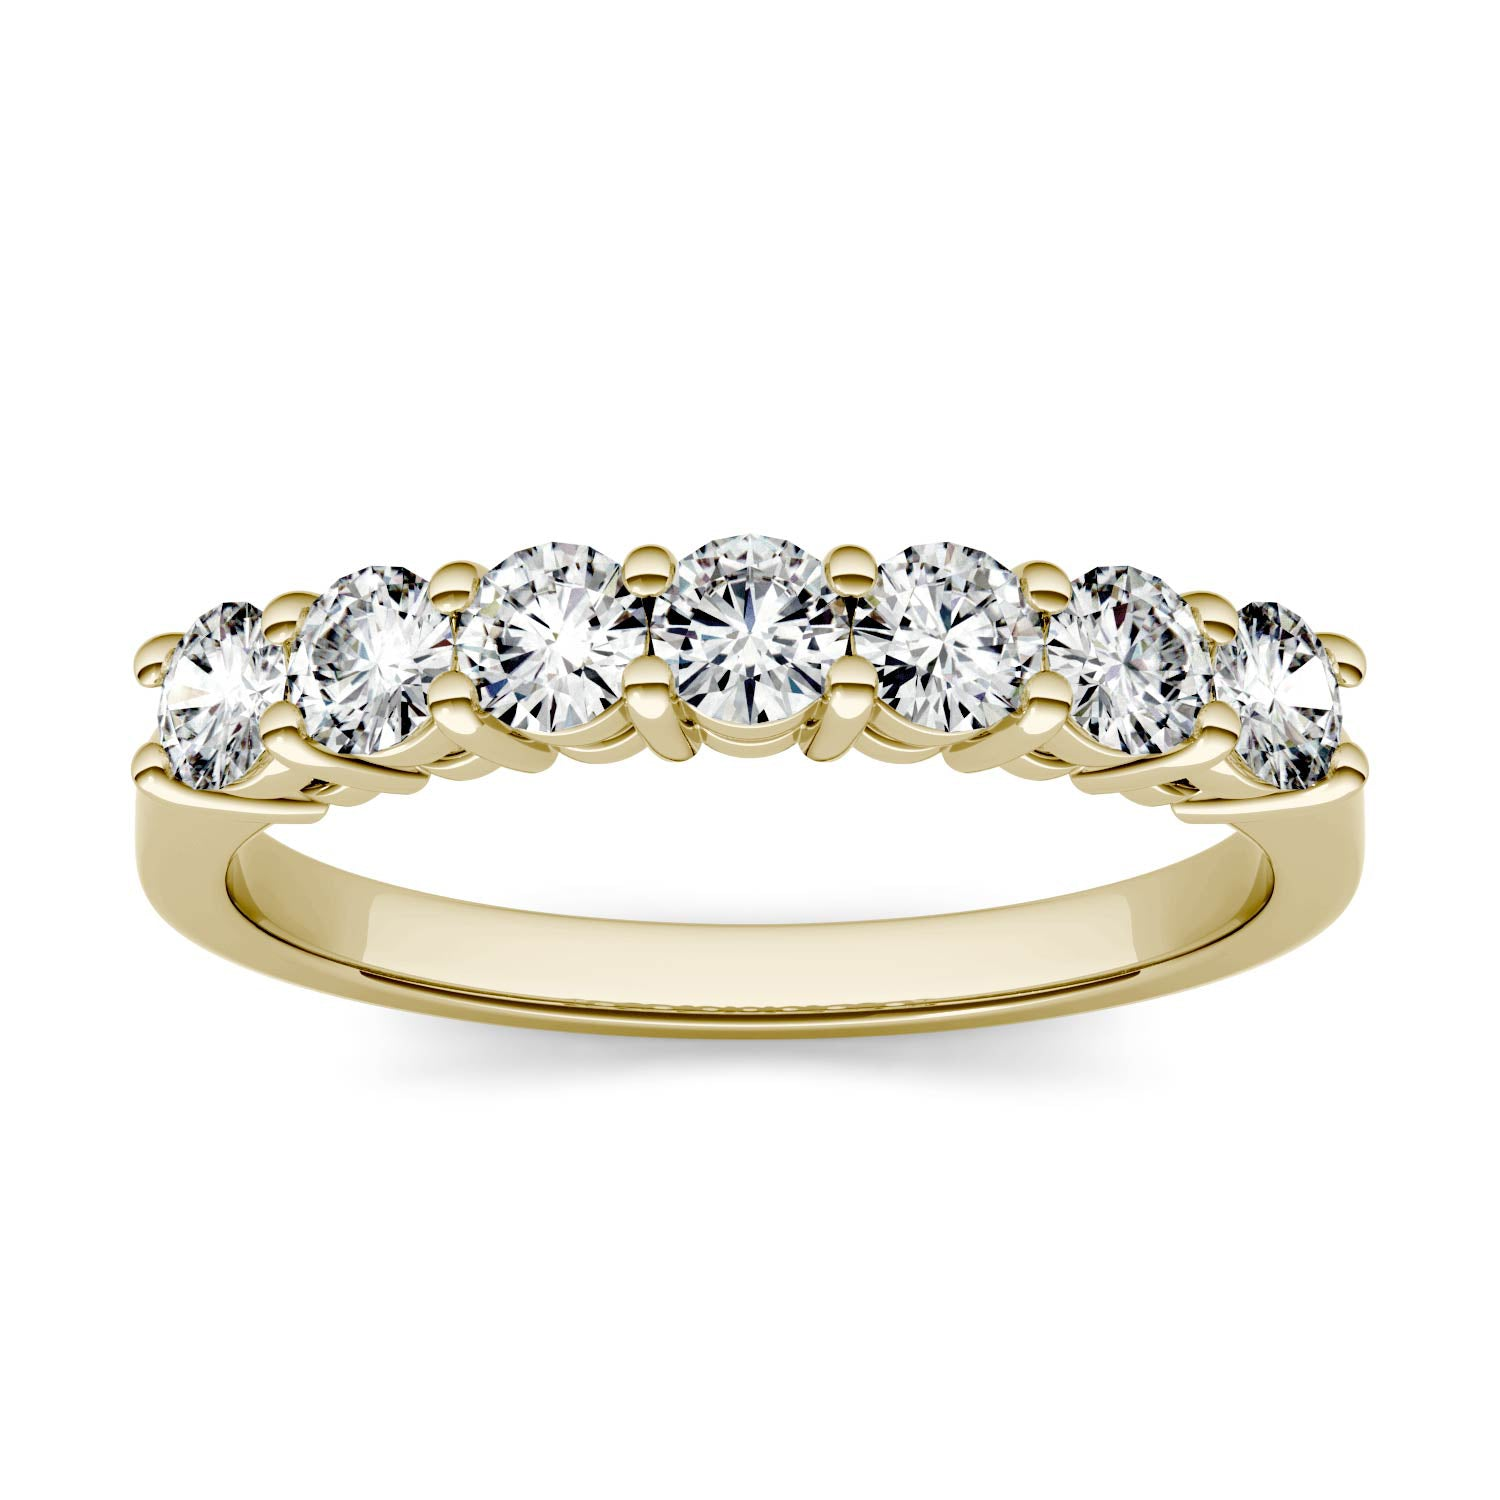 Charles & Colvard Moissanite Seven Stone Ring in Yellow Gold-612938 - Jewelry by Johan